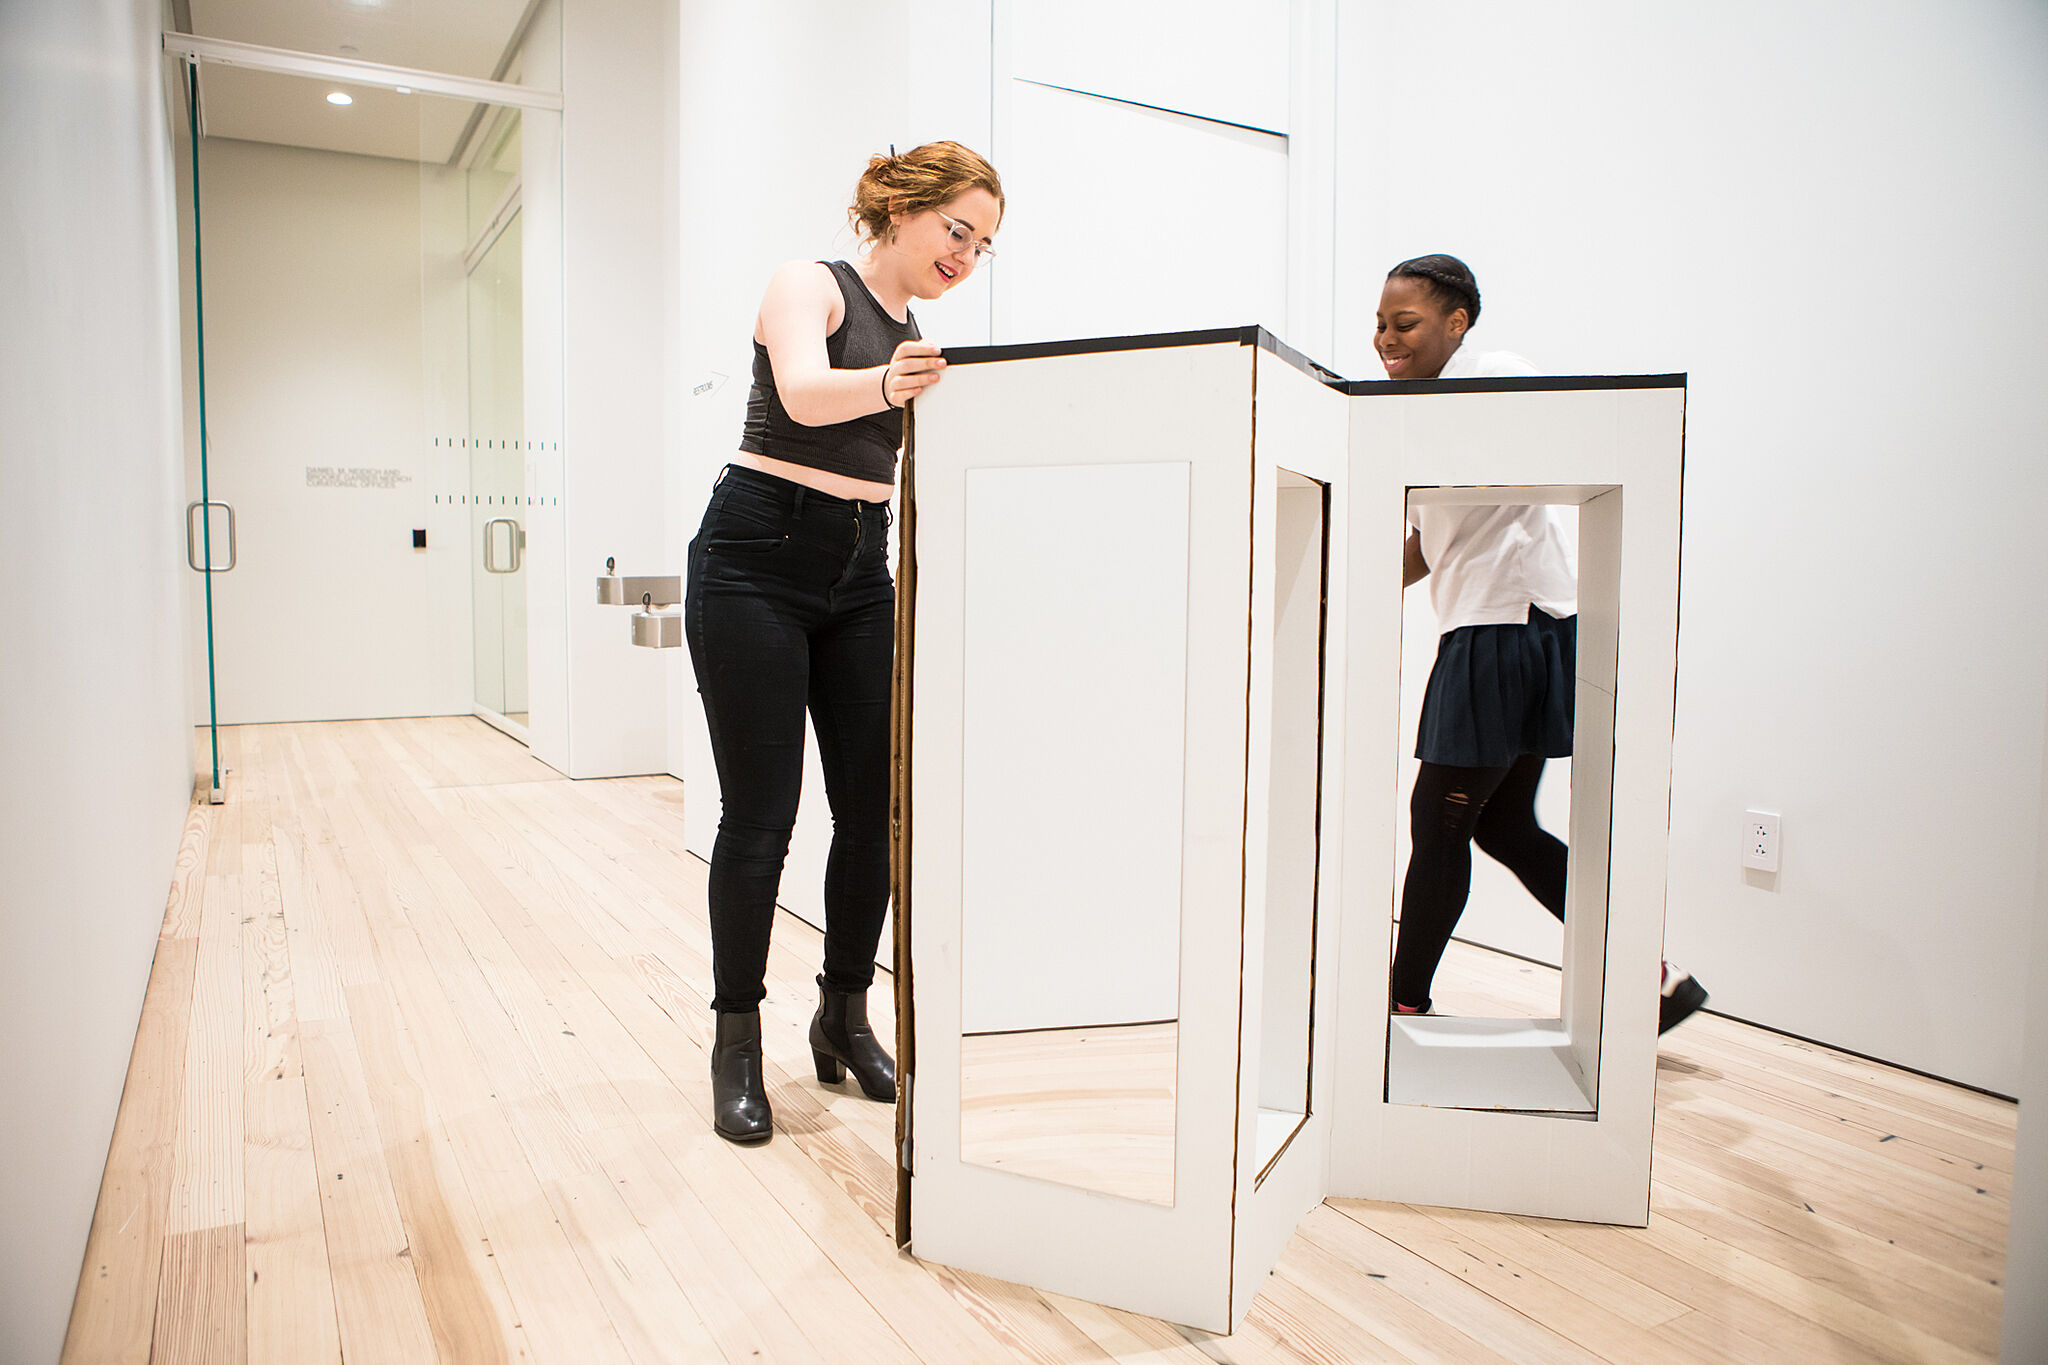 Two teens set up a mirror sculpture in museum space.